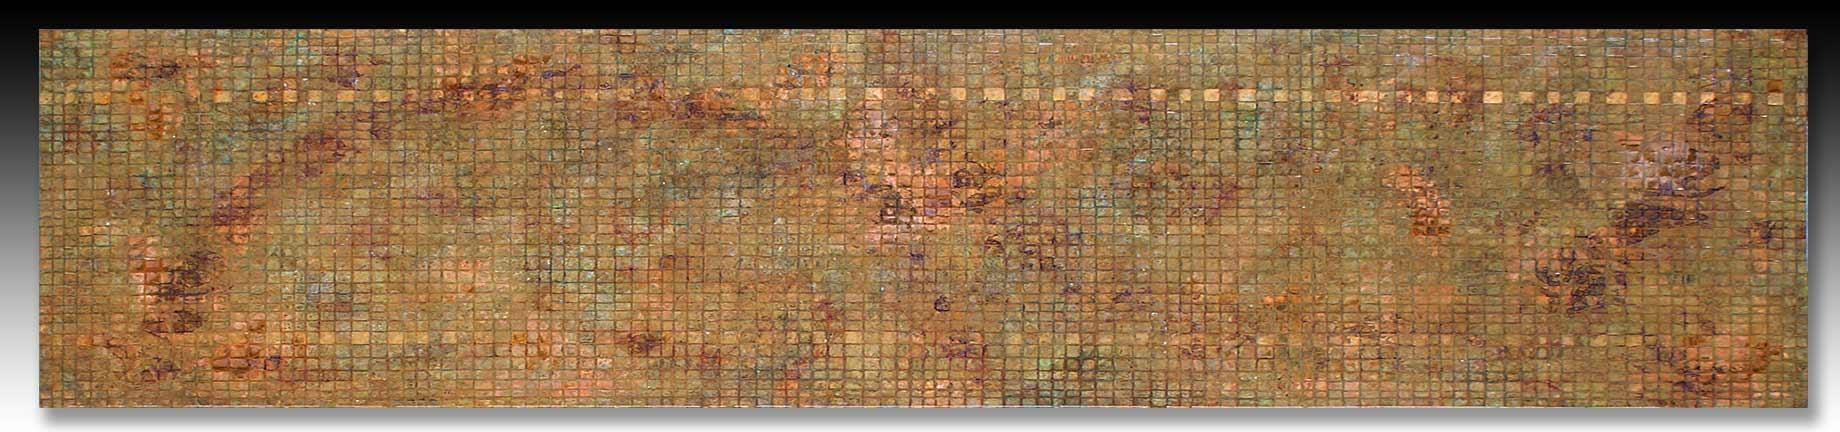 Large Metal Wall Art > Very Large Copper Art Weaving > Copper Wall Art Regarding Large Copper Wall Art (Image 13 of 20)